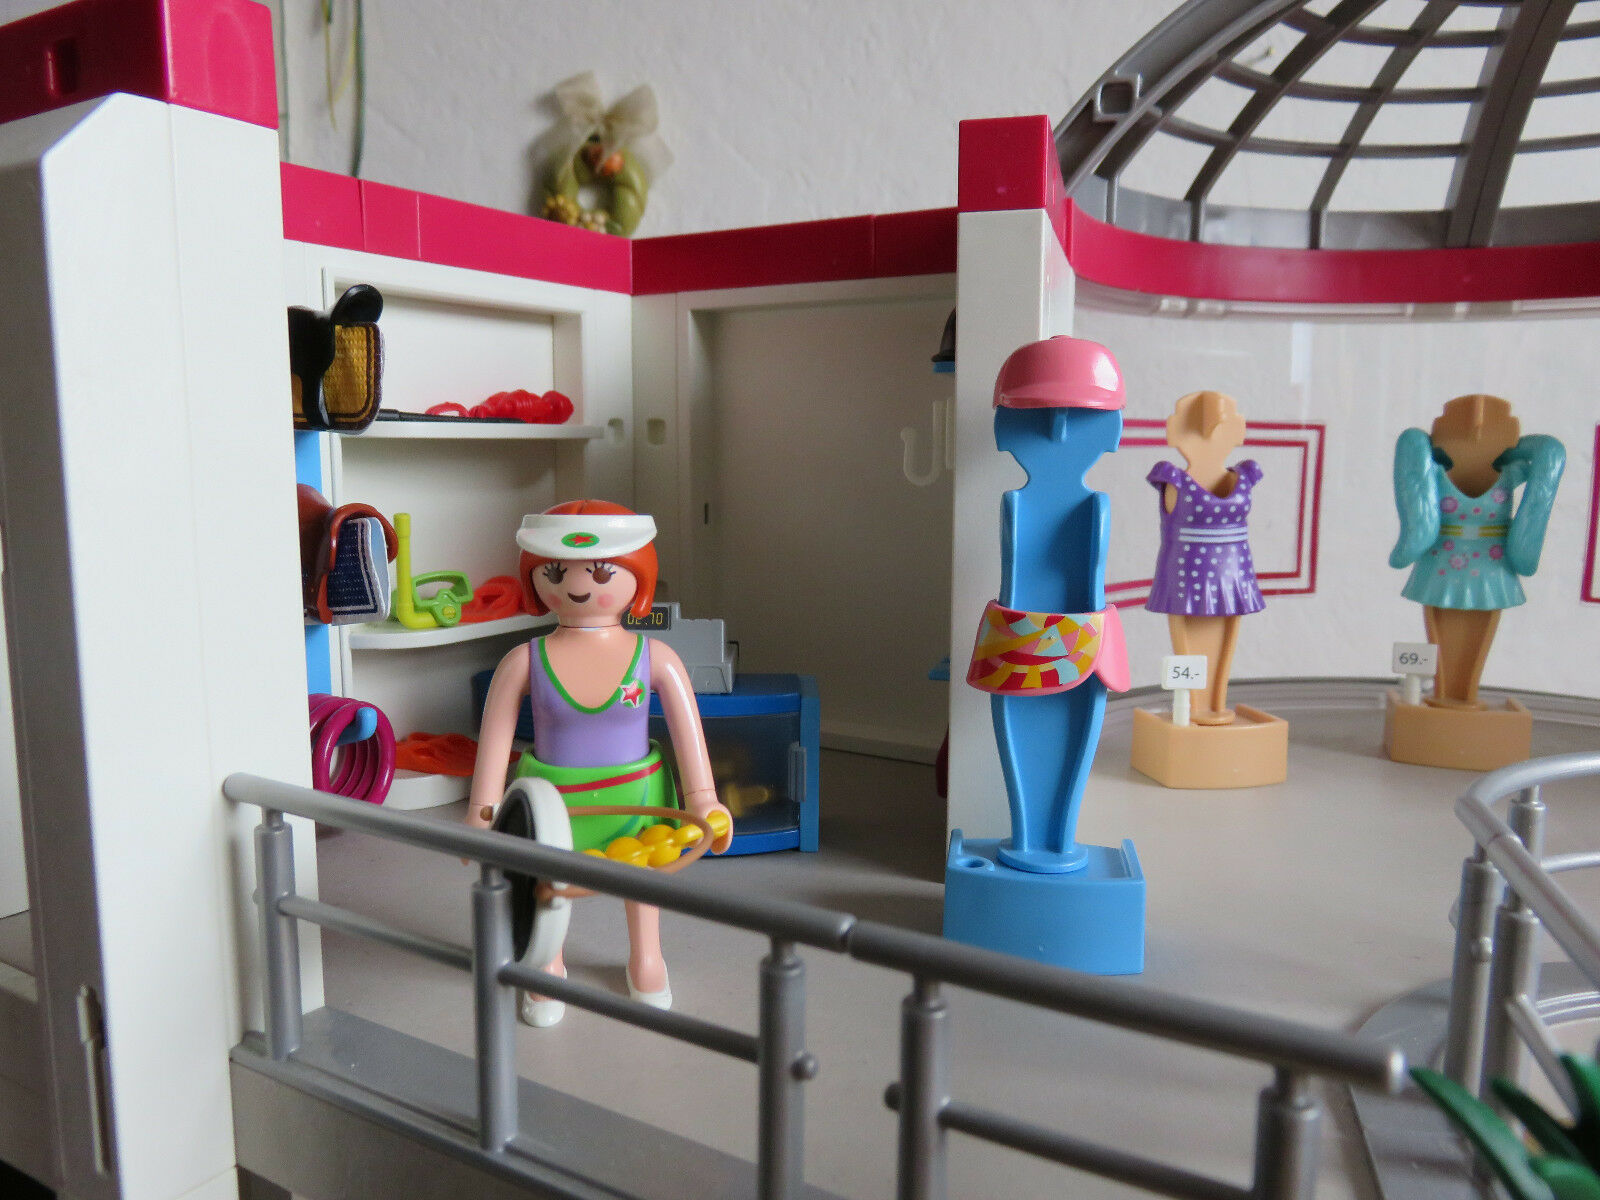 Playmobil 5485  Shopping Center mit Erweiterung 6333 6333 6333 in OVP komplett bd2ac0